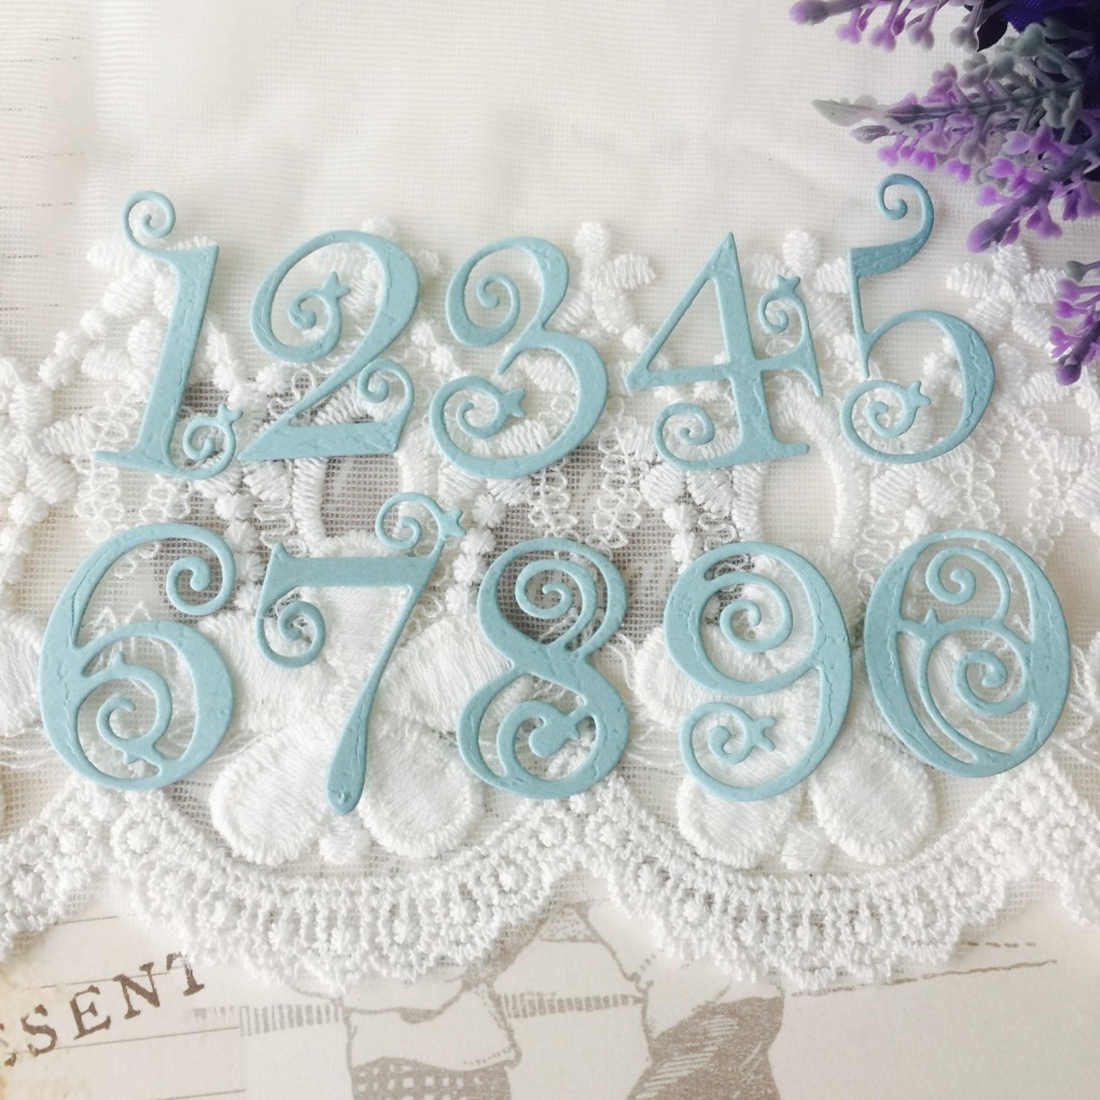 Circle Lace Numbers Metal Dies Scrapbooking Metal Cutting Dies Craft Stamps die Cut Embossing Greeting Card Make Stencil Cover